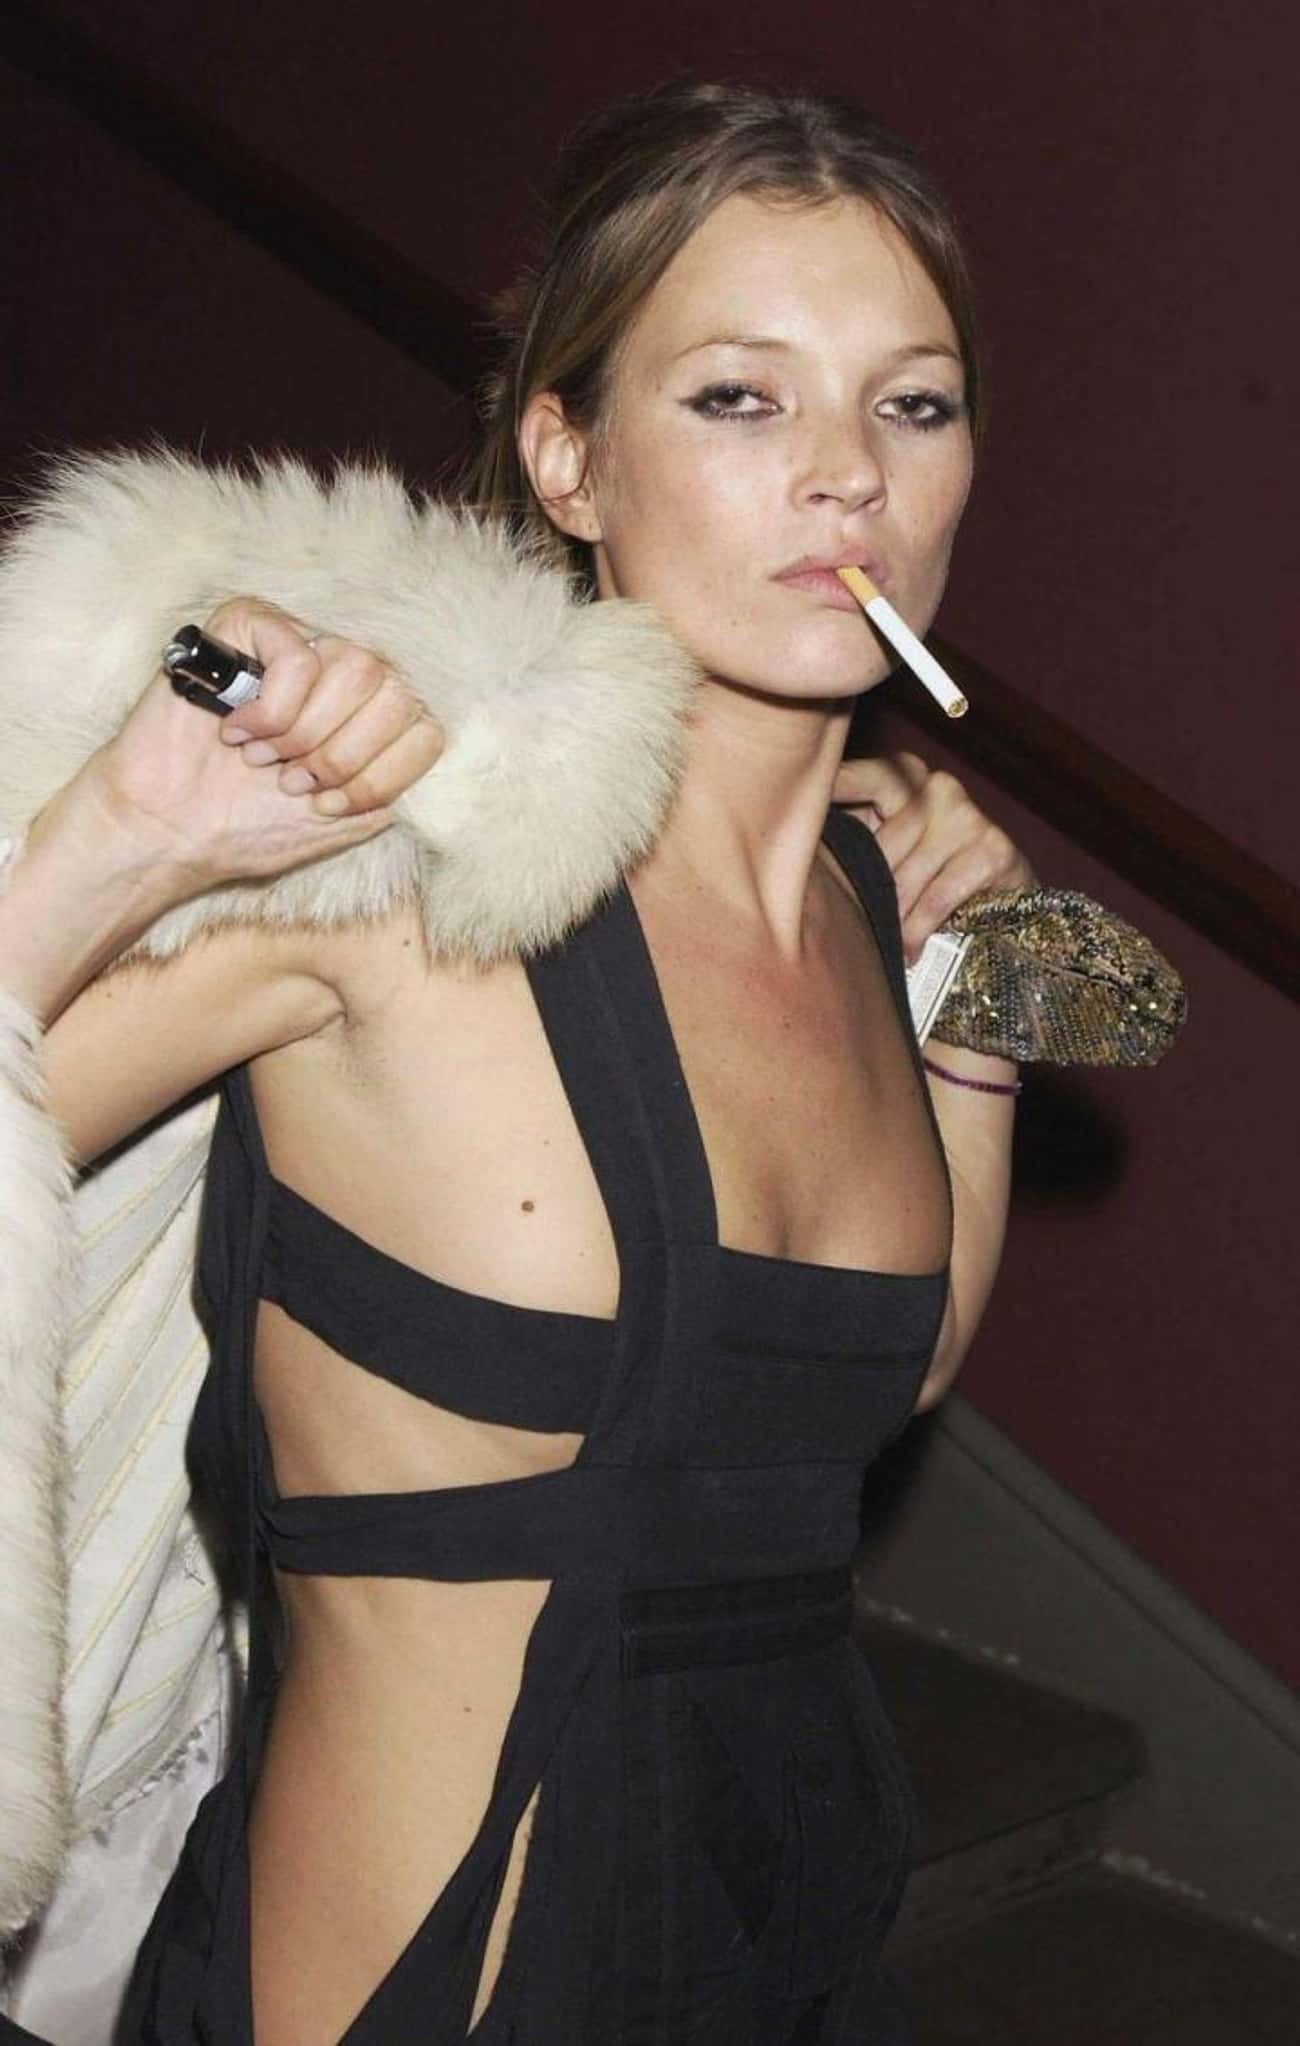 Kate Moss is listed (or ranked) 2 on the list Jack Nicholson's Loves & Hookups